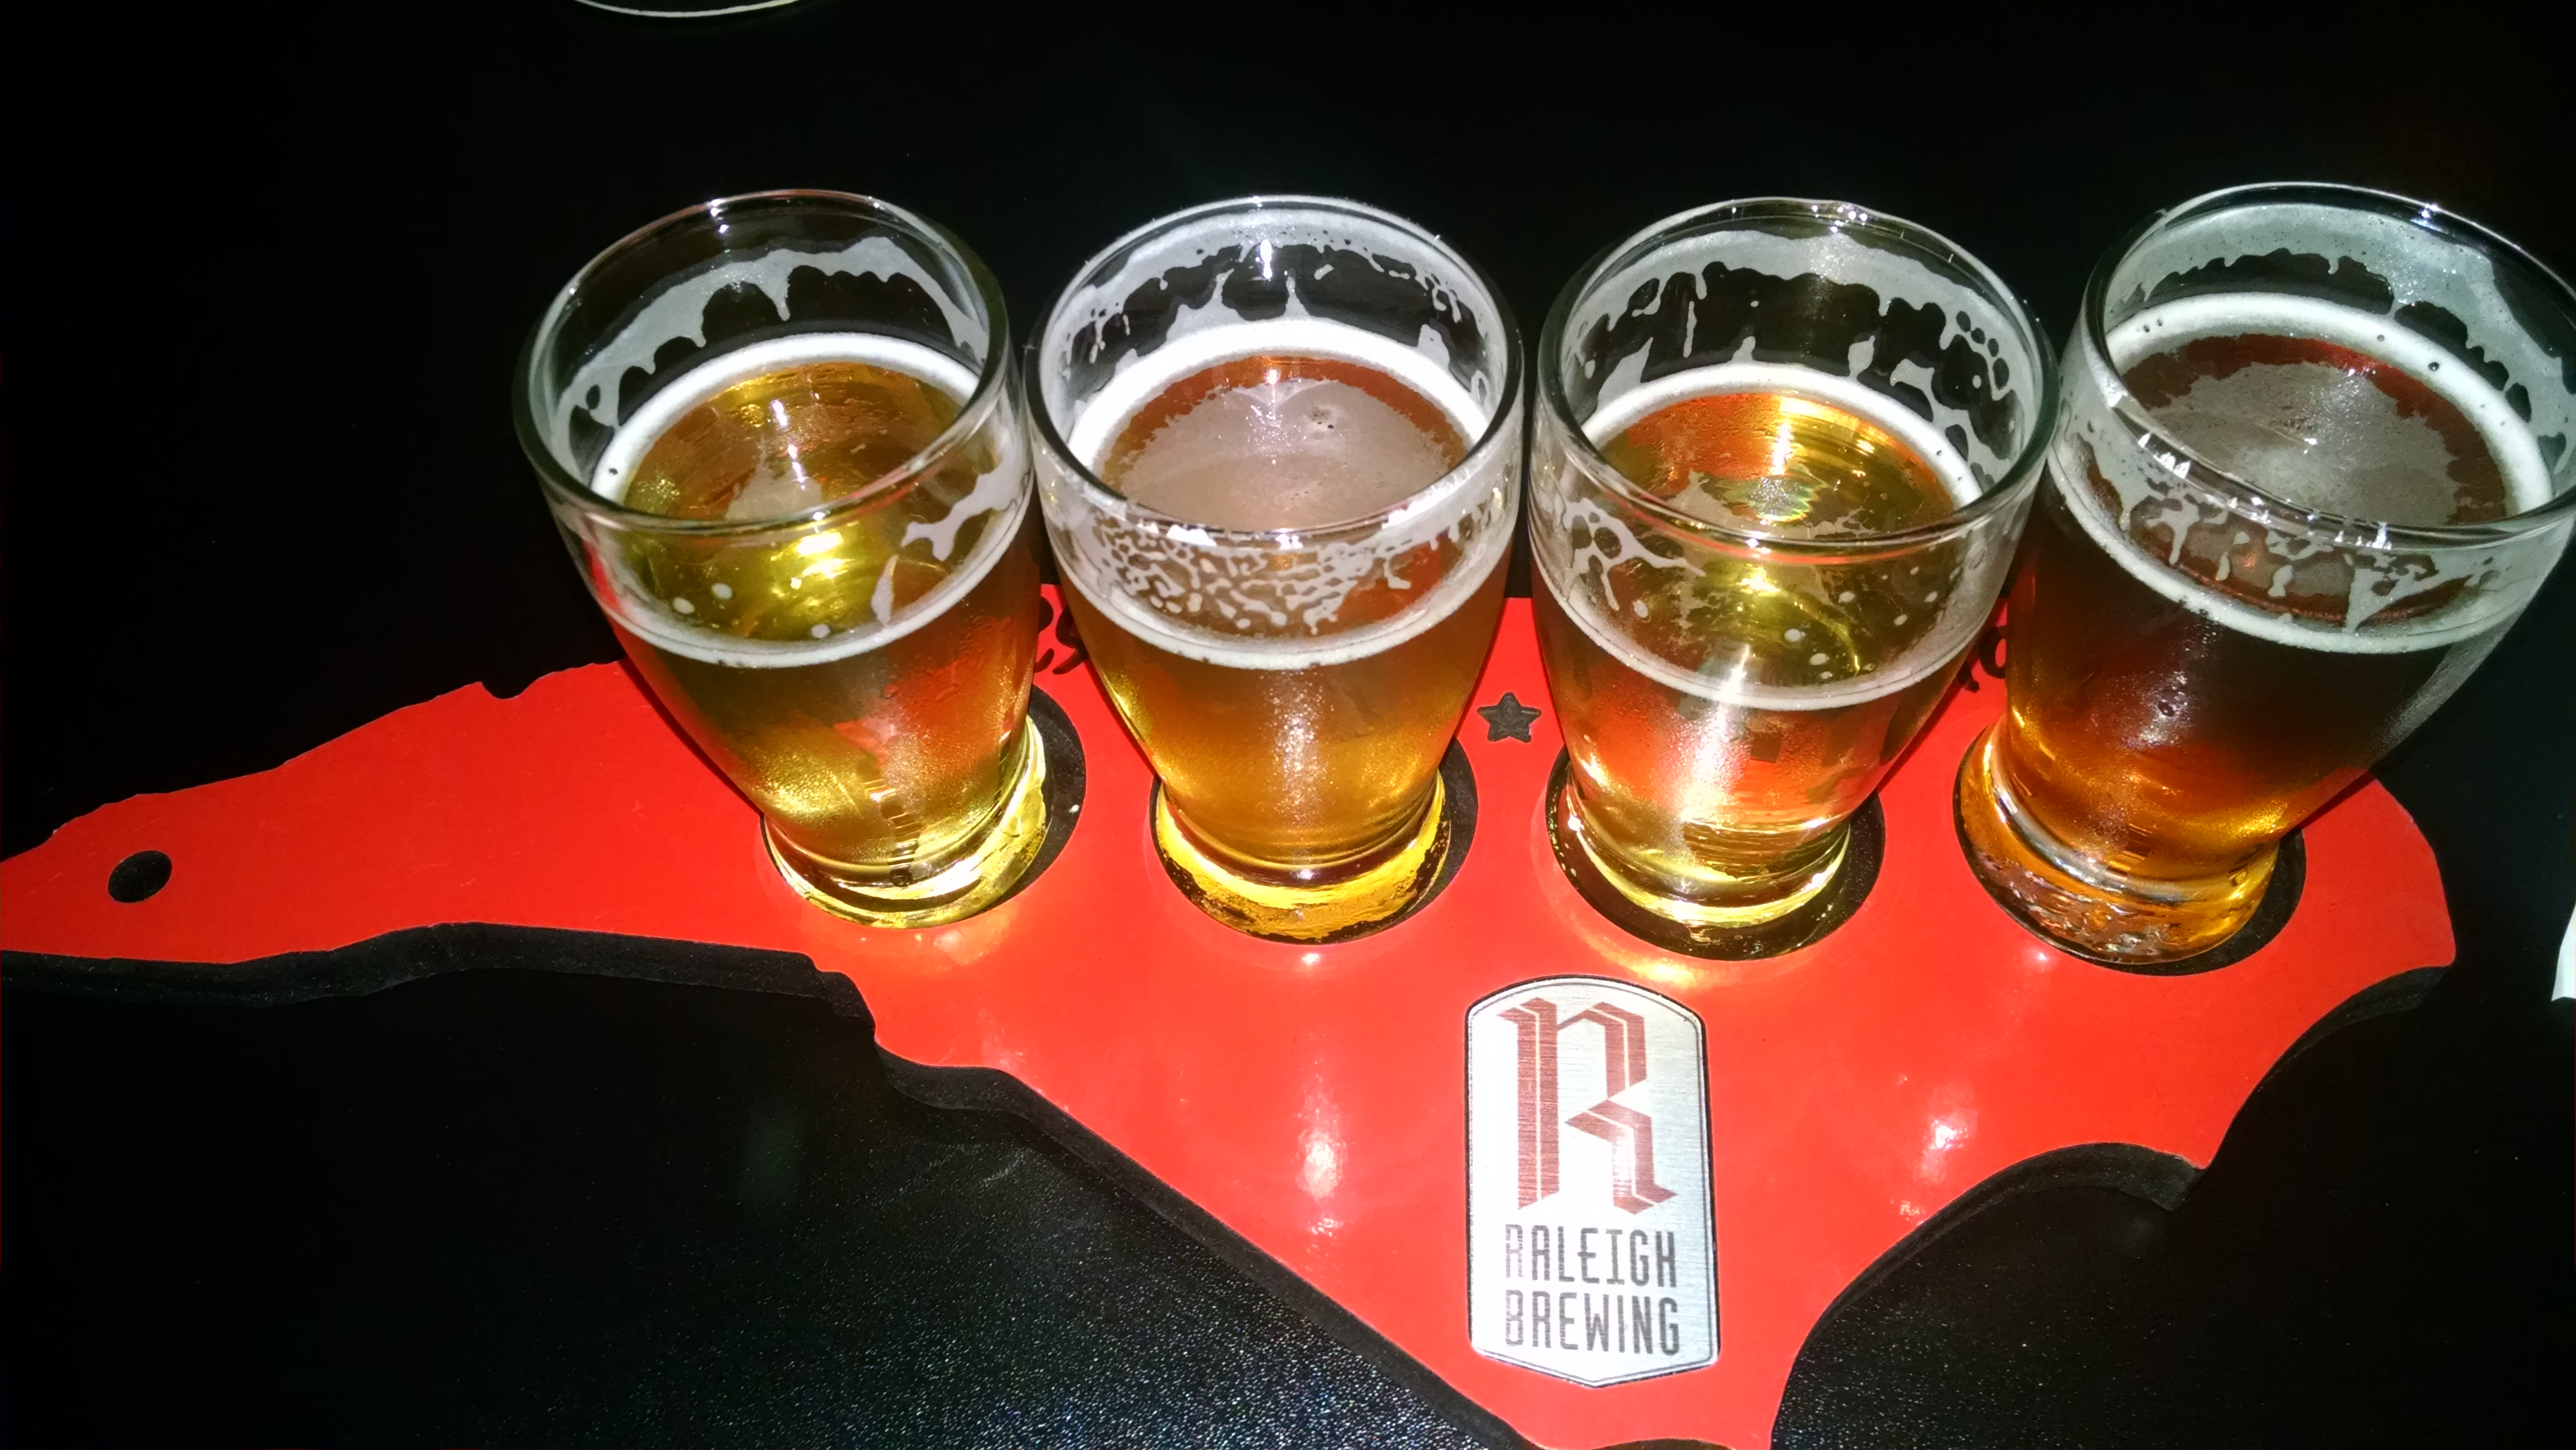 Painting the town RED- Raleigh Brewing Company- Raleigh